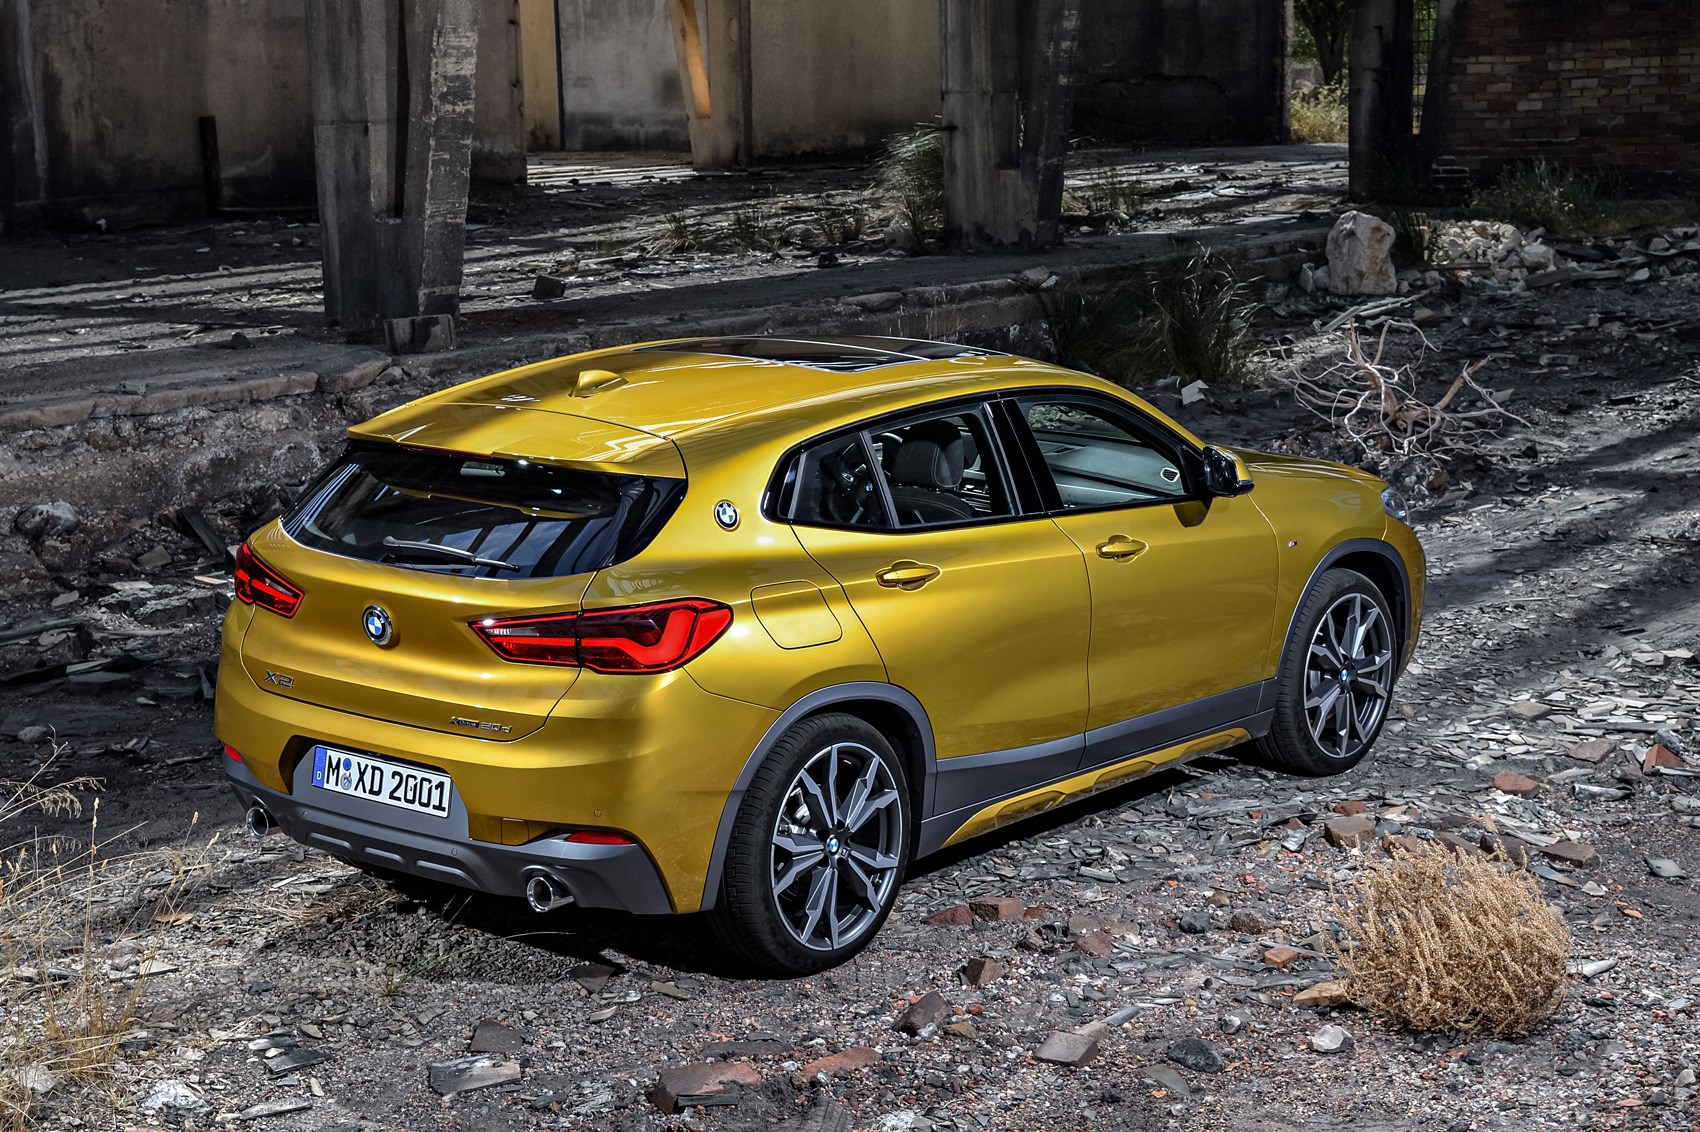 Bmw X2 Suv New Crossover Dubbed The Cool X Revealed Car Magazine